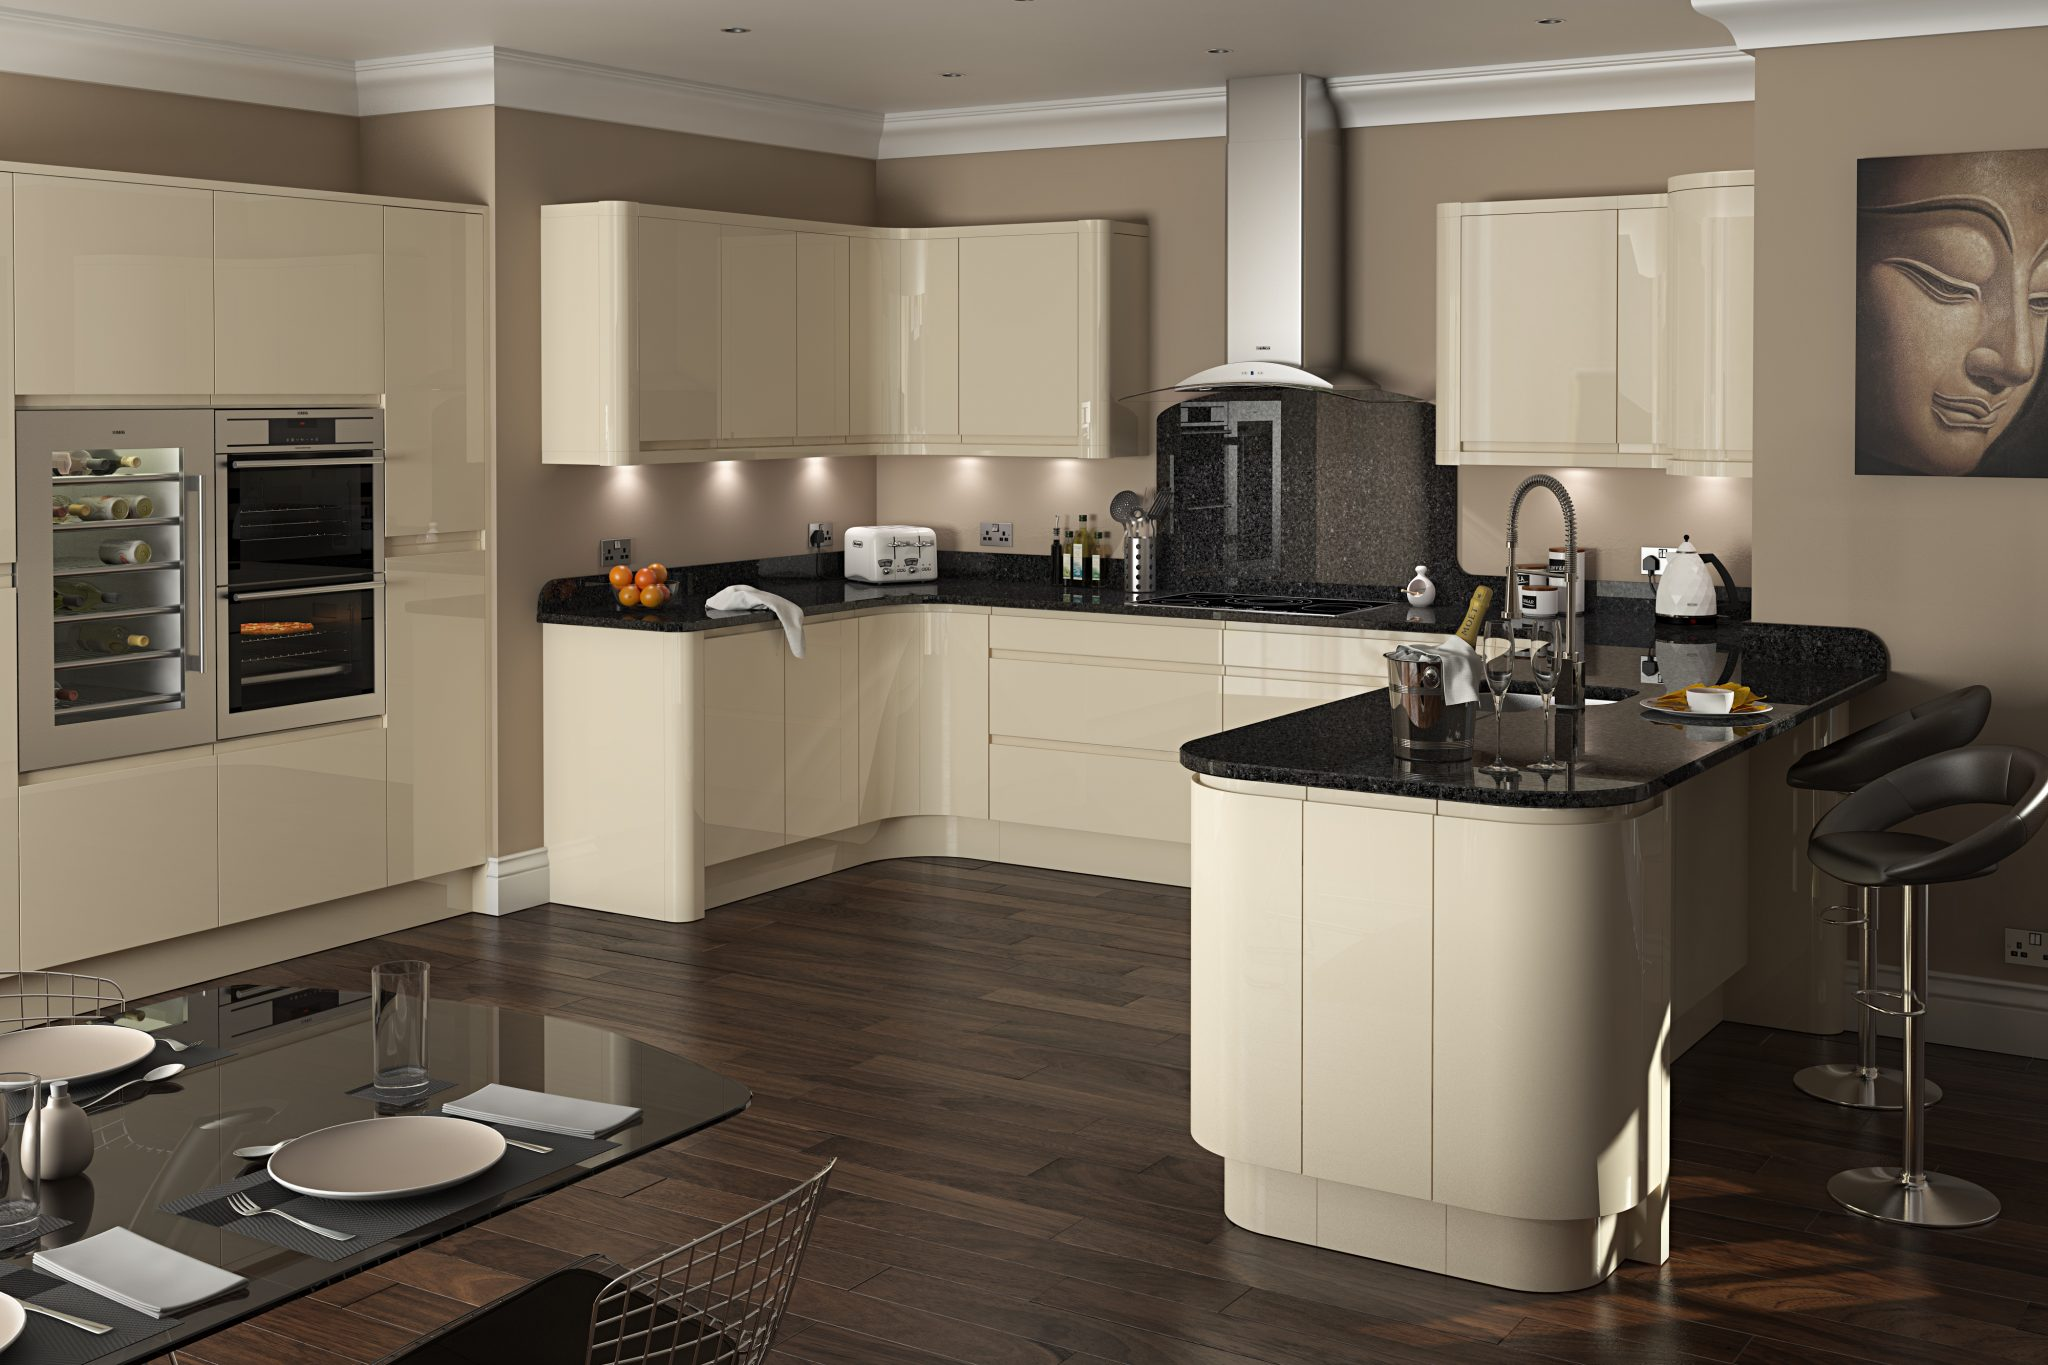 Kitchen design kitchens wirral bespoke luxury designs for Kitchen design ideas images